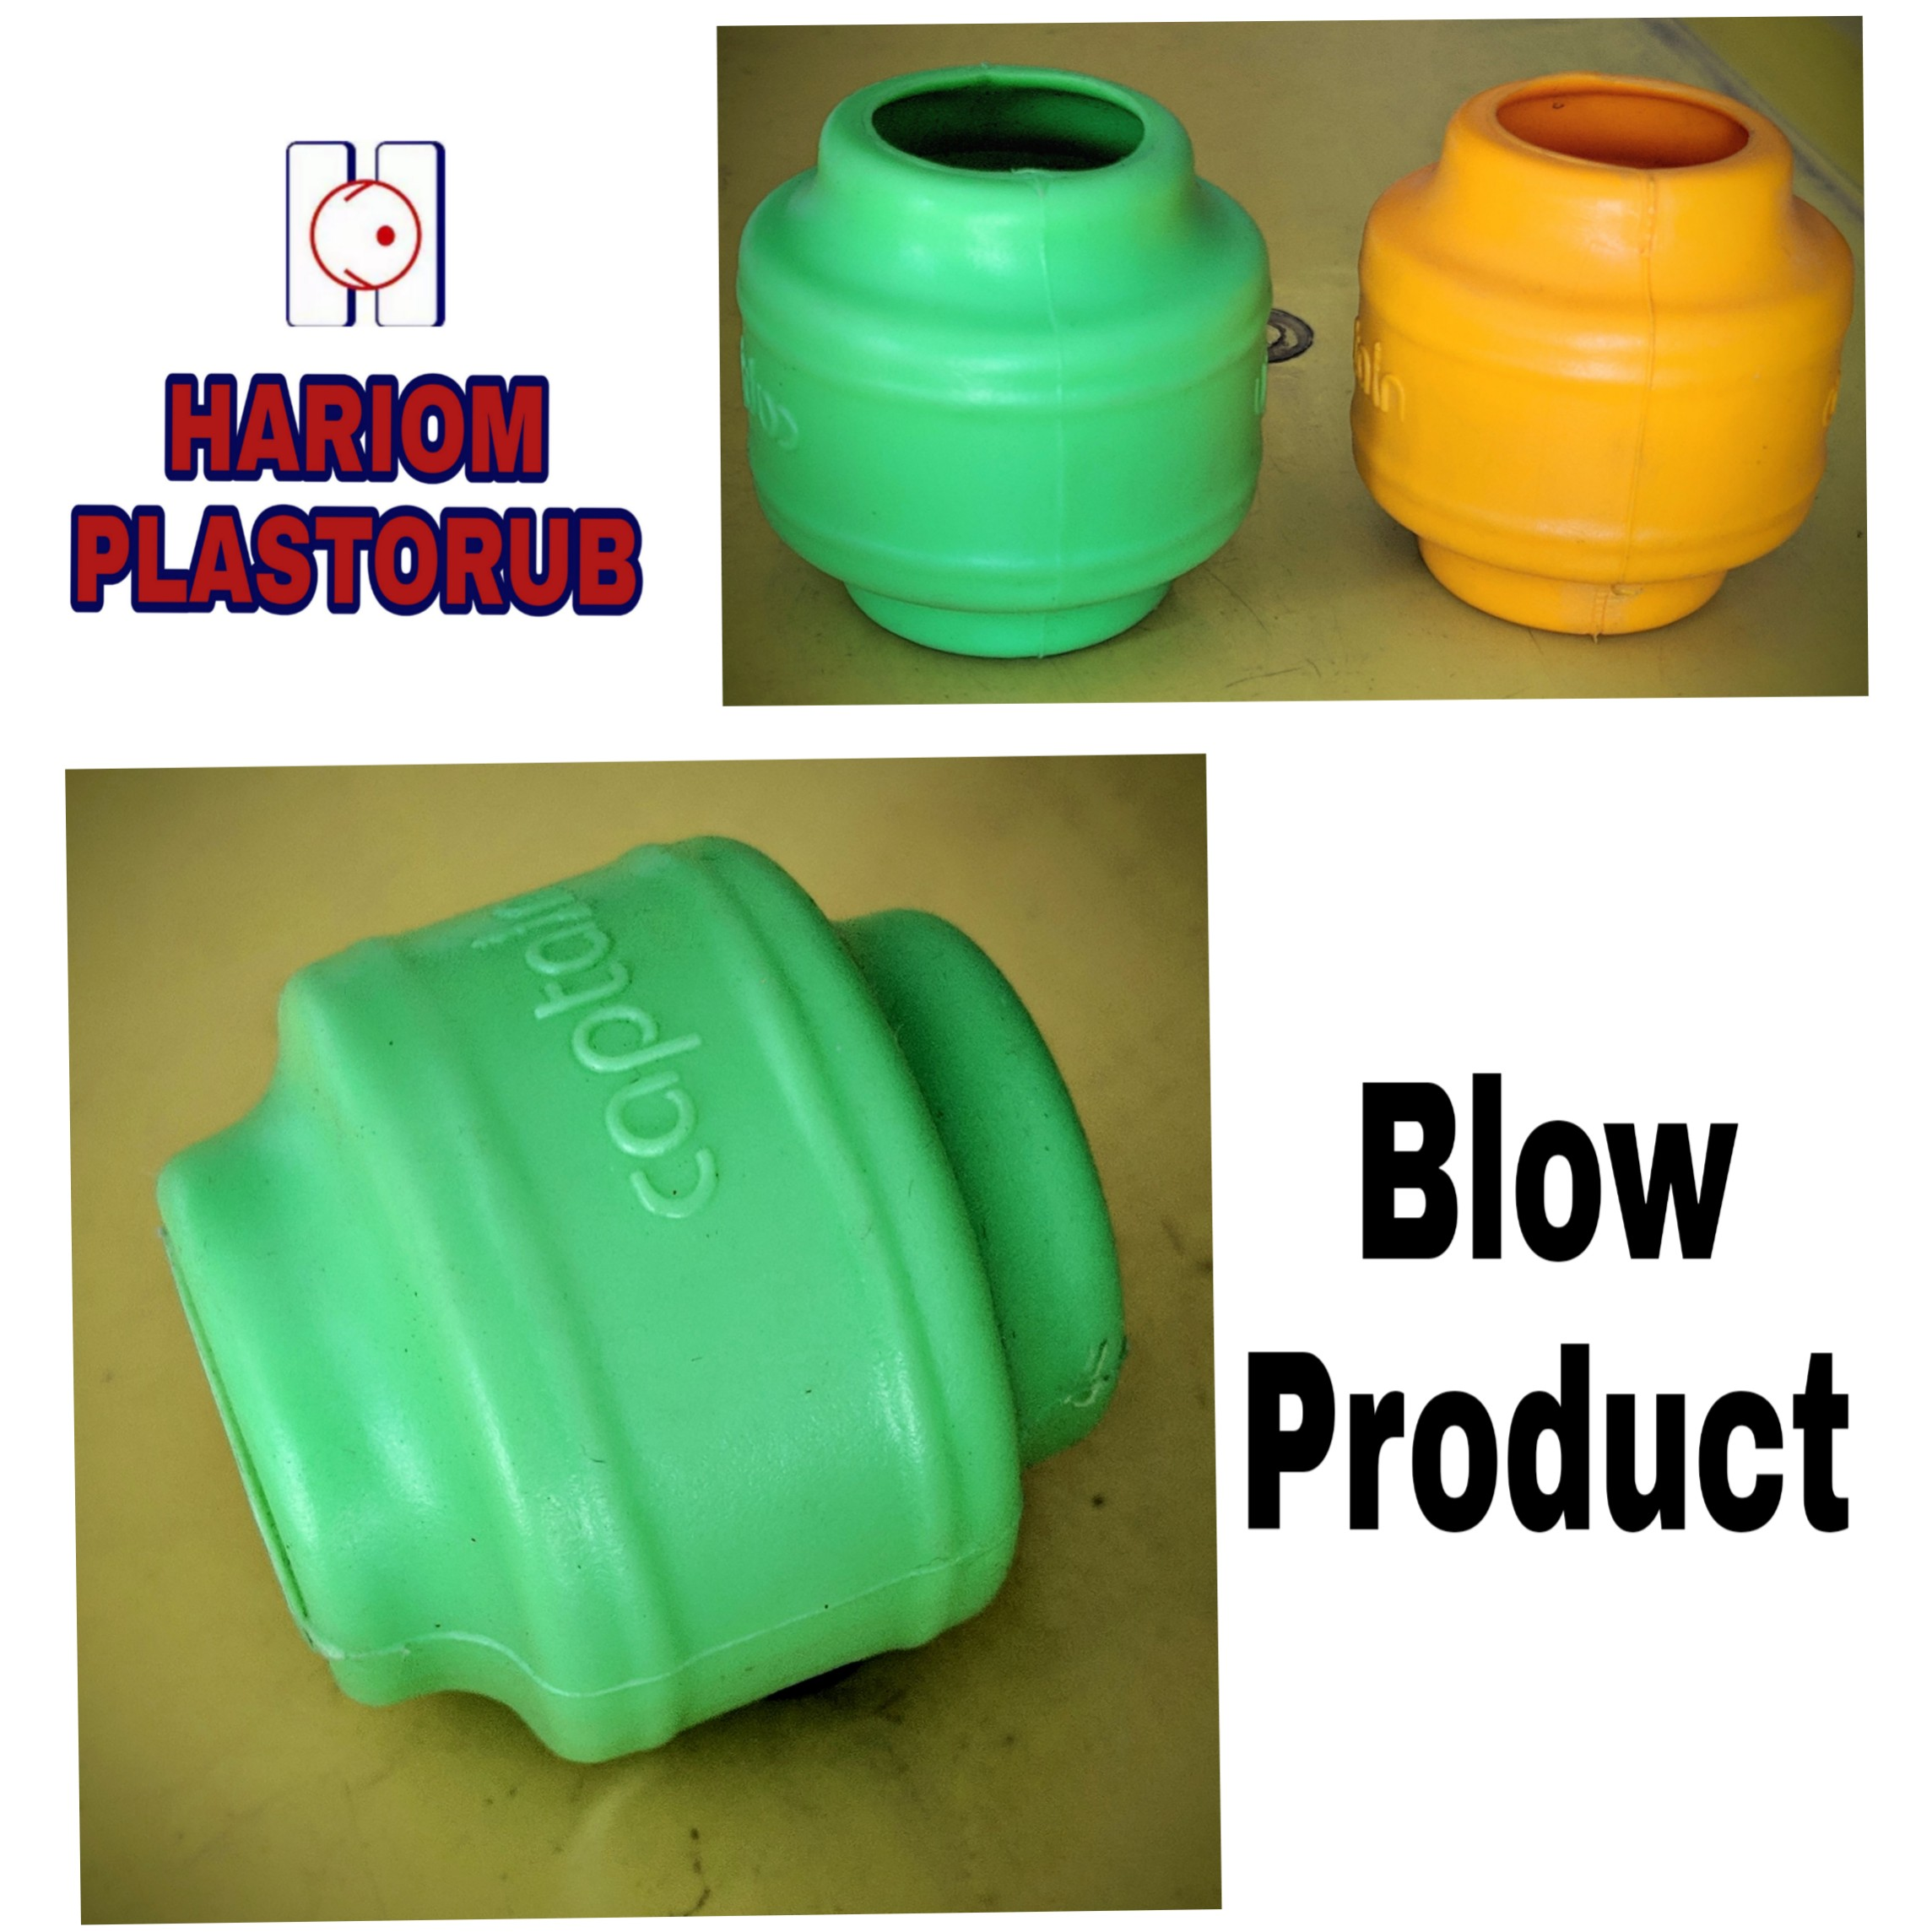 Blow Product